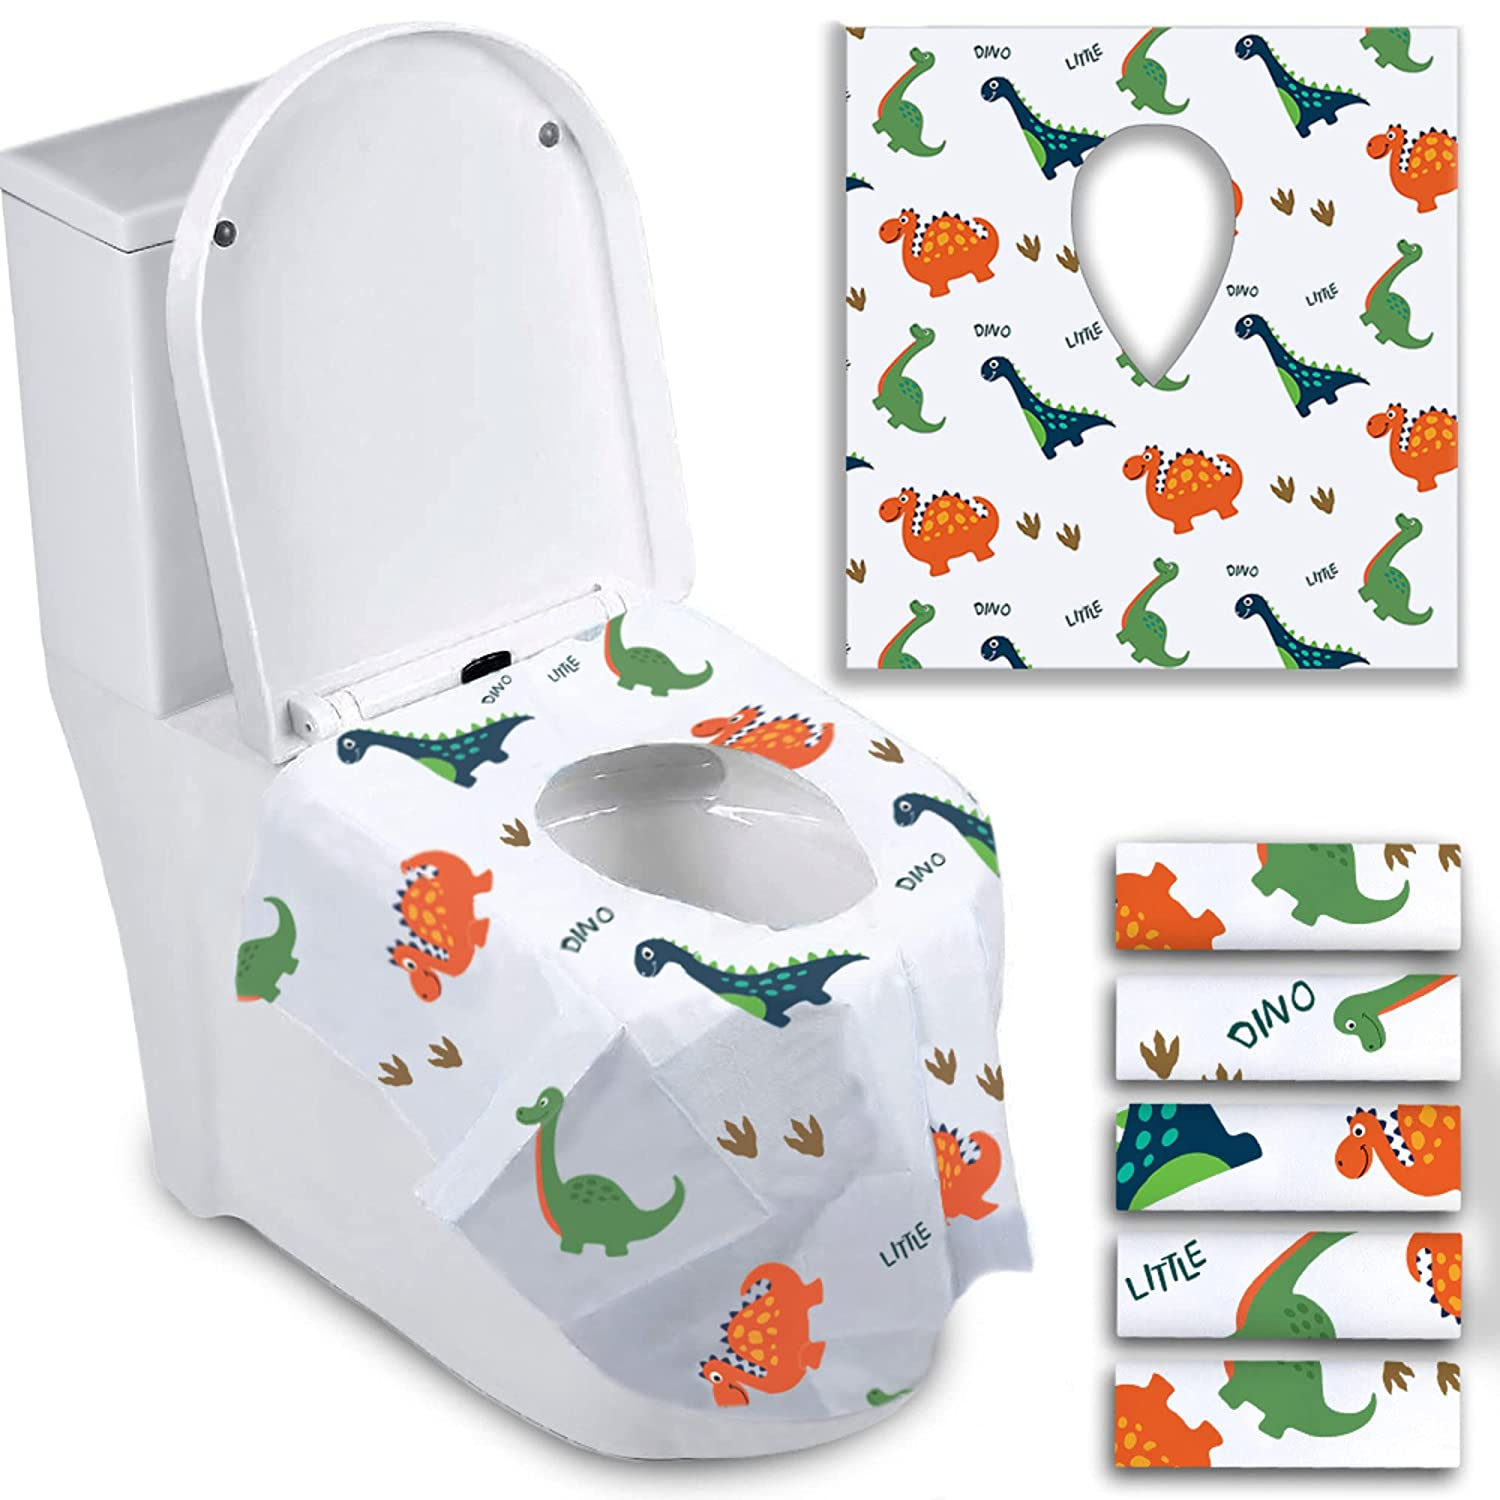 Disposable Special sale item Toilet Seat Covers for Individually Luxury goods Wrappe Toddlers -